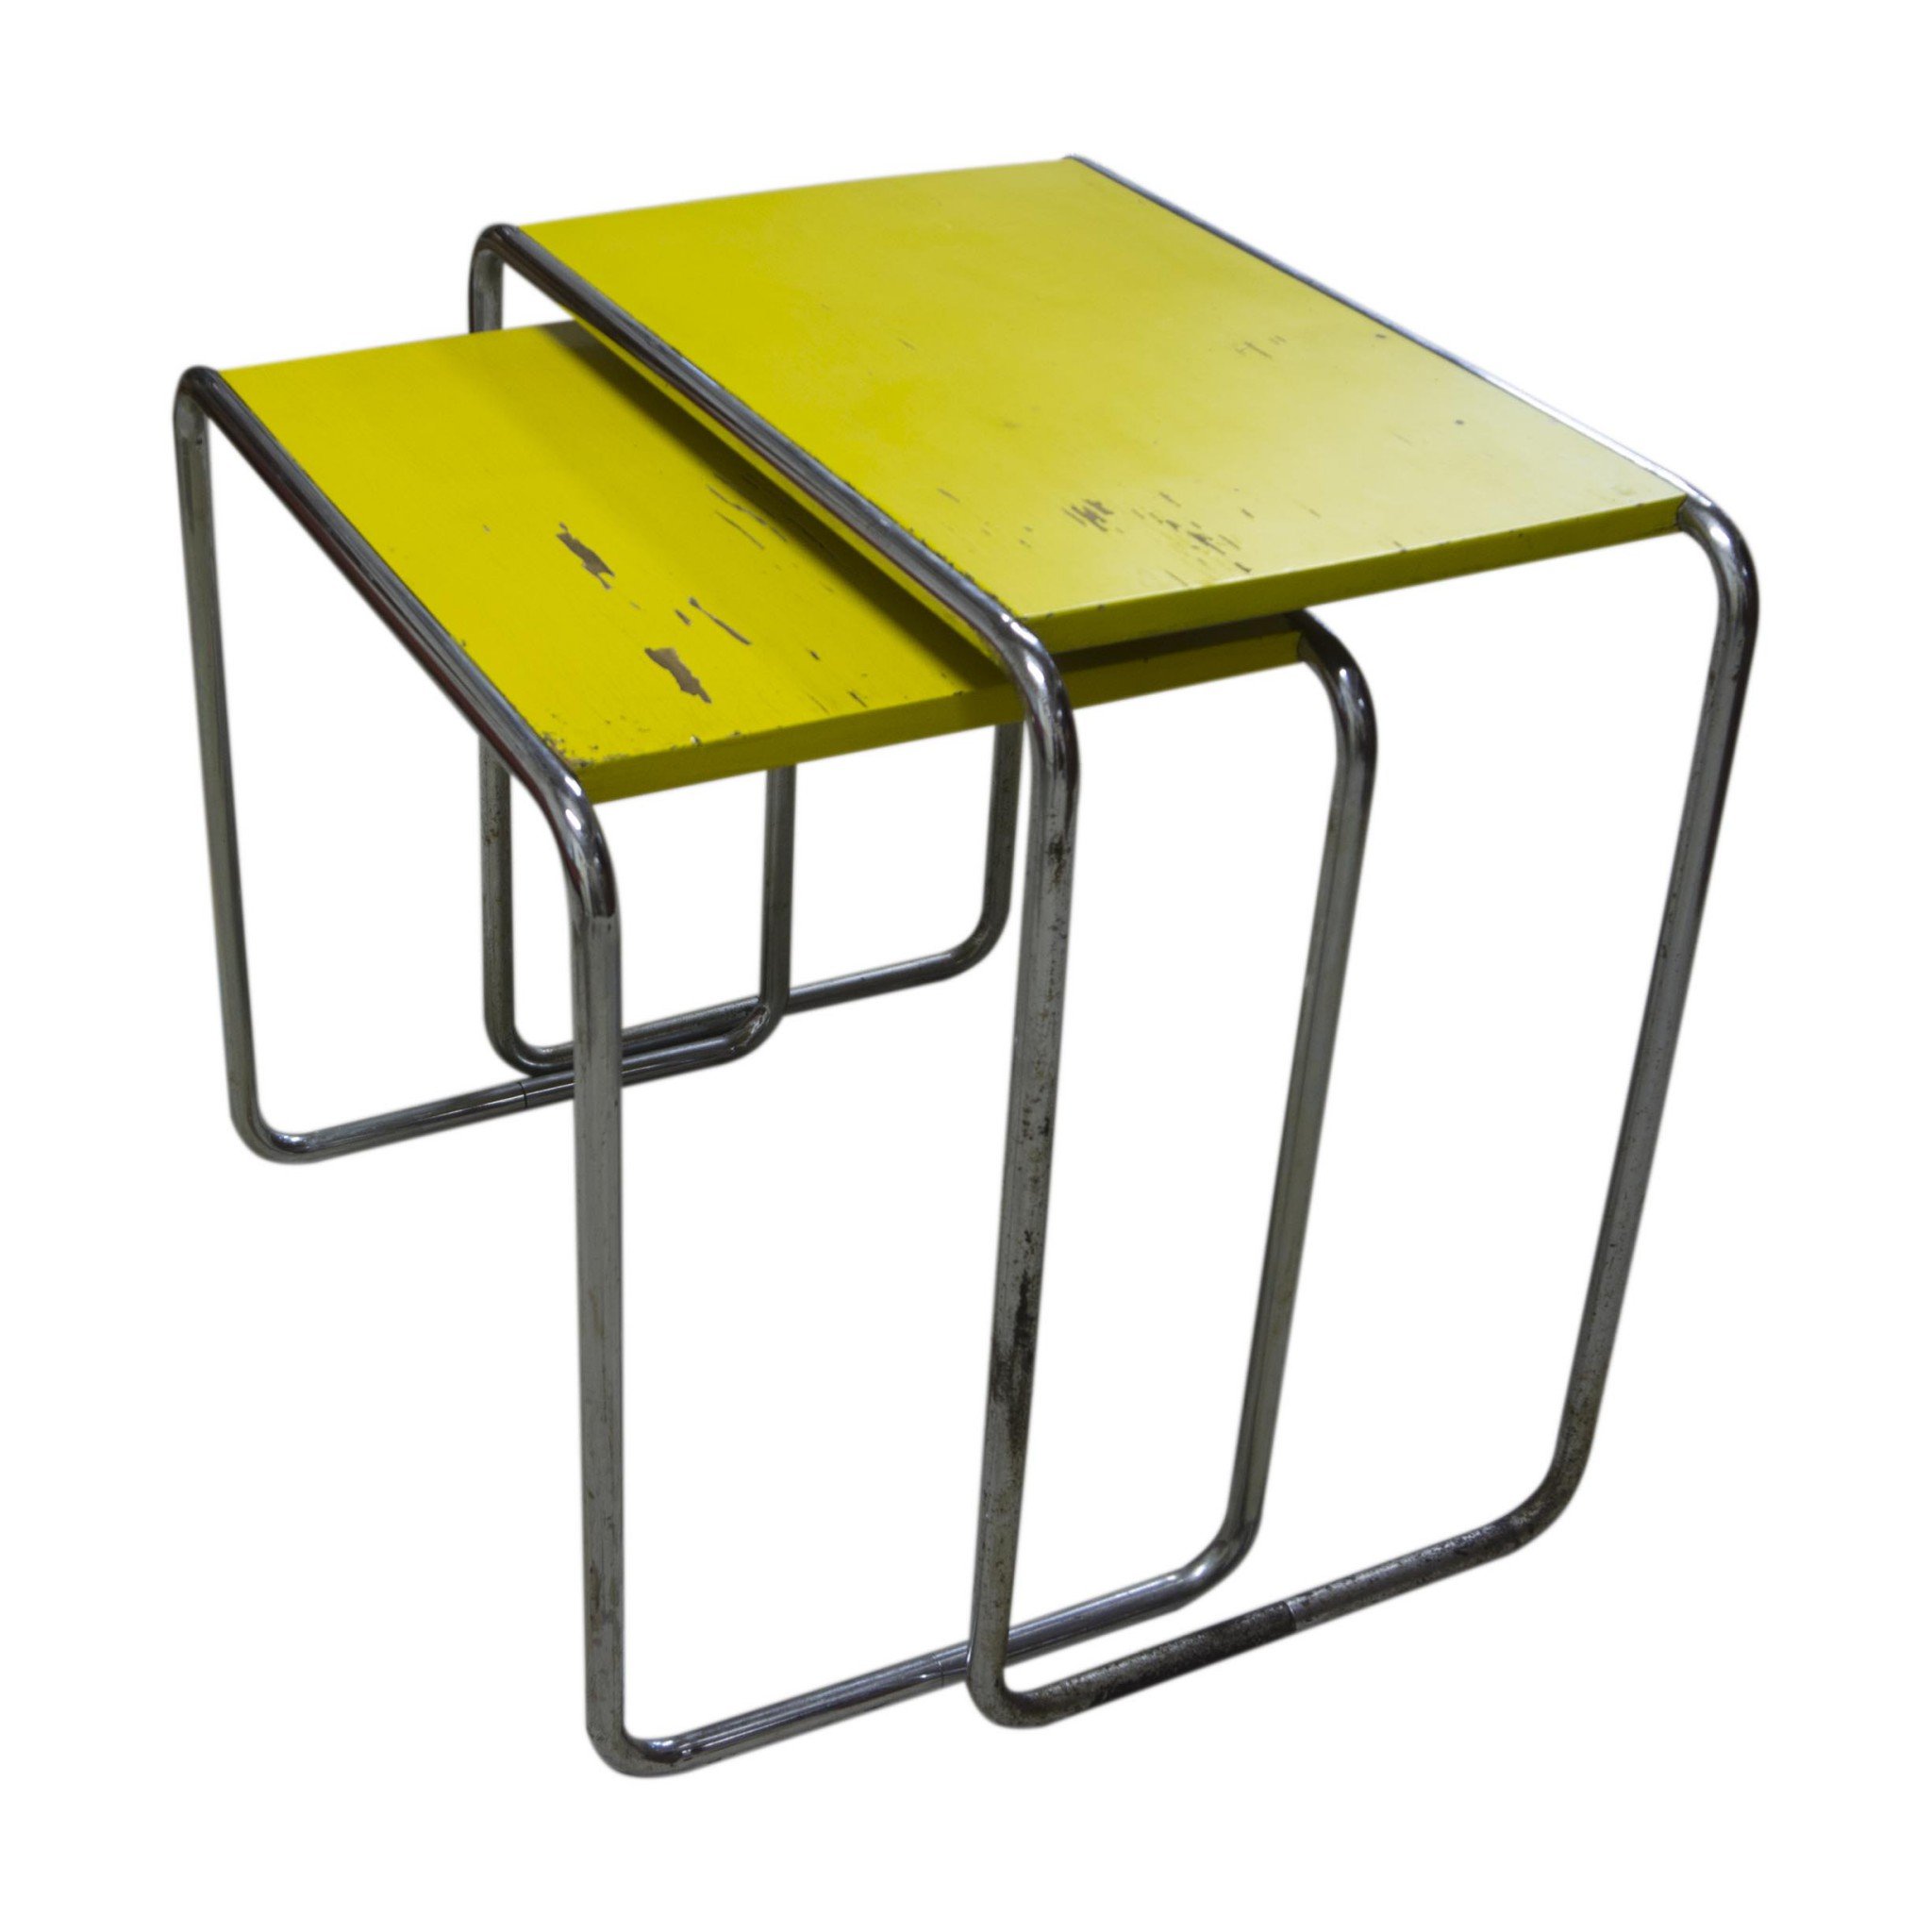 Marcel breuer pair of bauhaus nesting tables b9 1930s lightbox geotapseo Choice Image